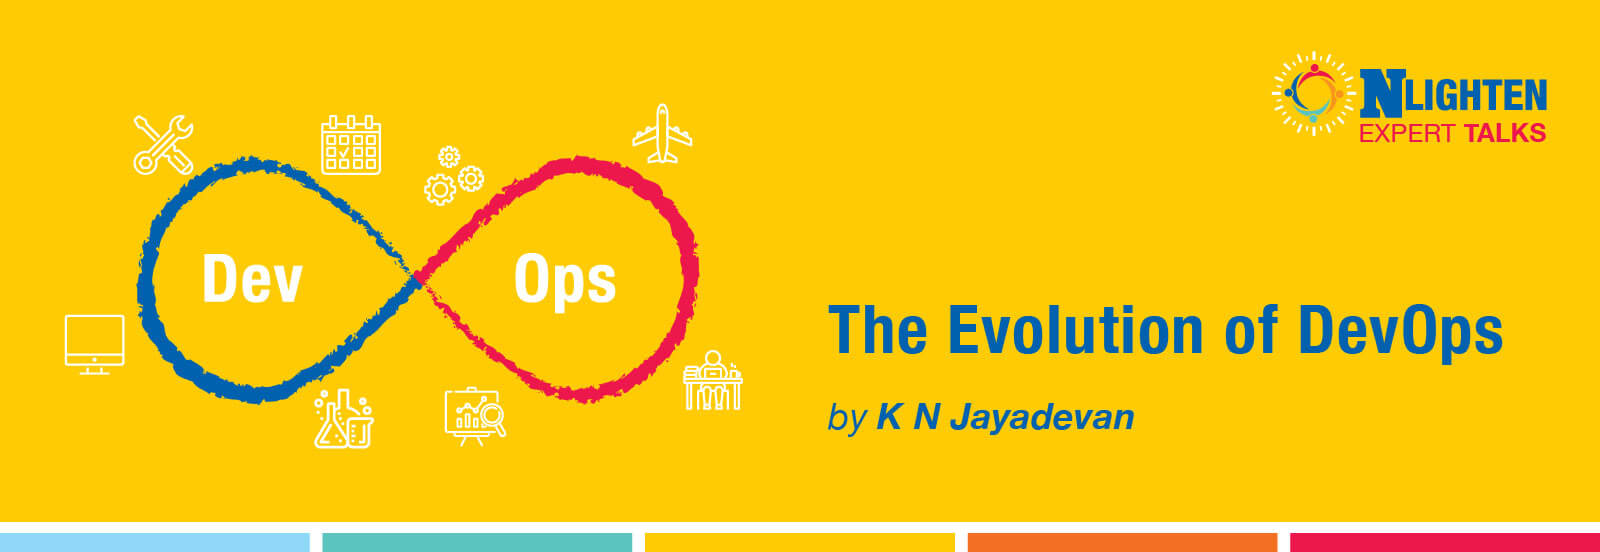 Evolution of DevOps banner